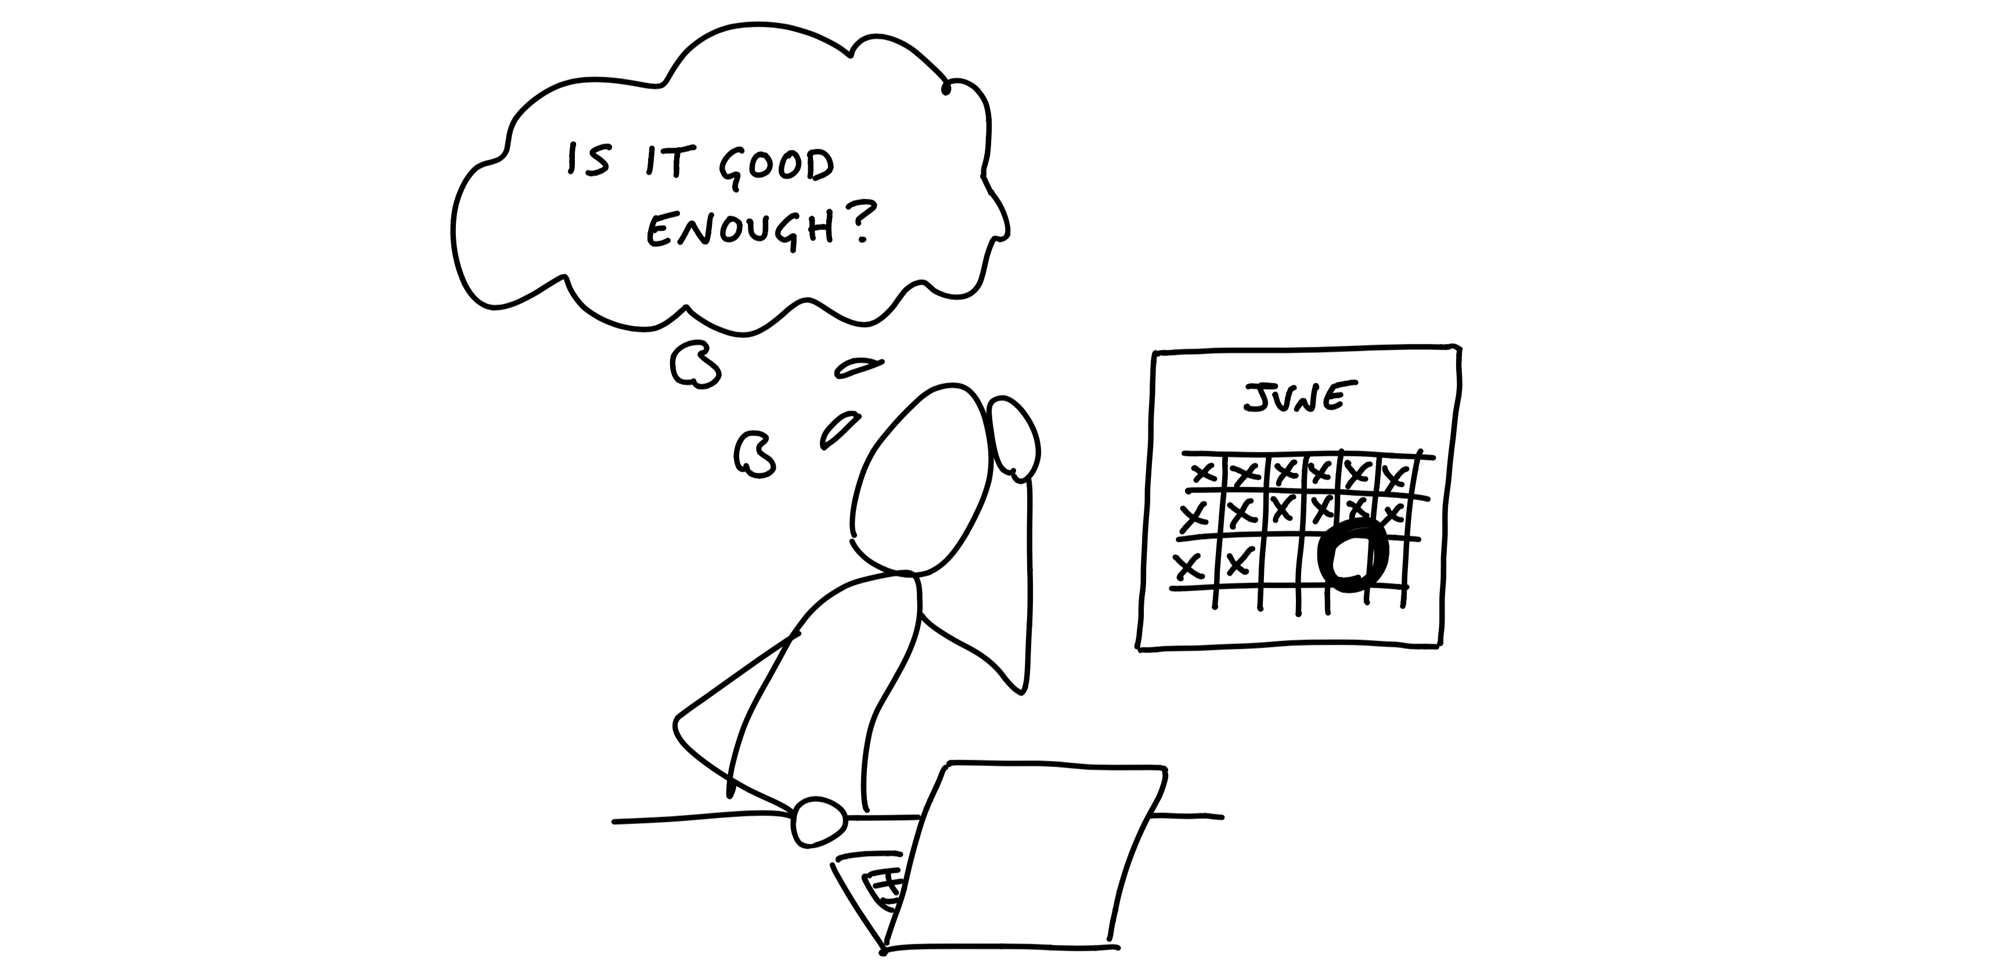 Cartoon. A figure sits in front of a laptop holding their hand in one hand and sweating. A calendar on the wall shows a deadline three two days away. Staring into the laptop, the figure asks in a thought bubble: Is it good enough?